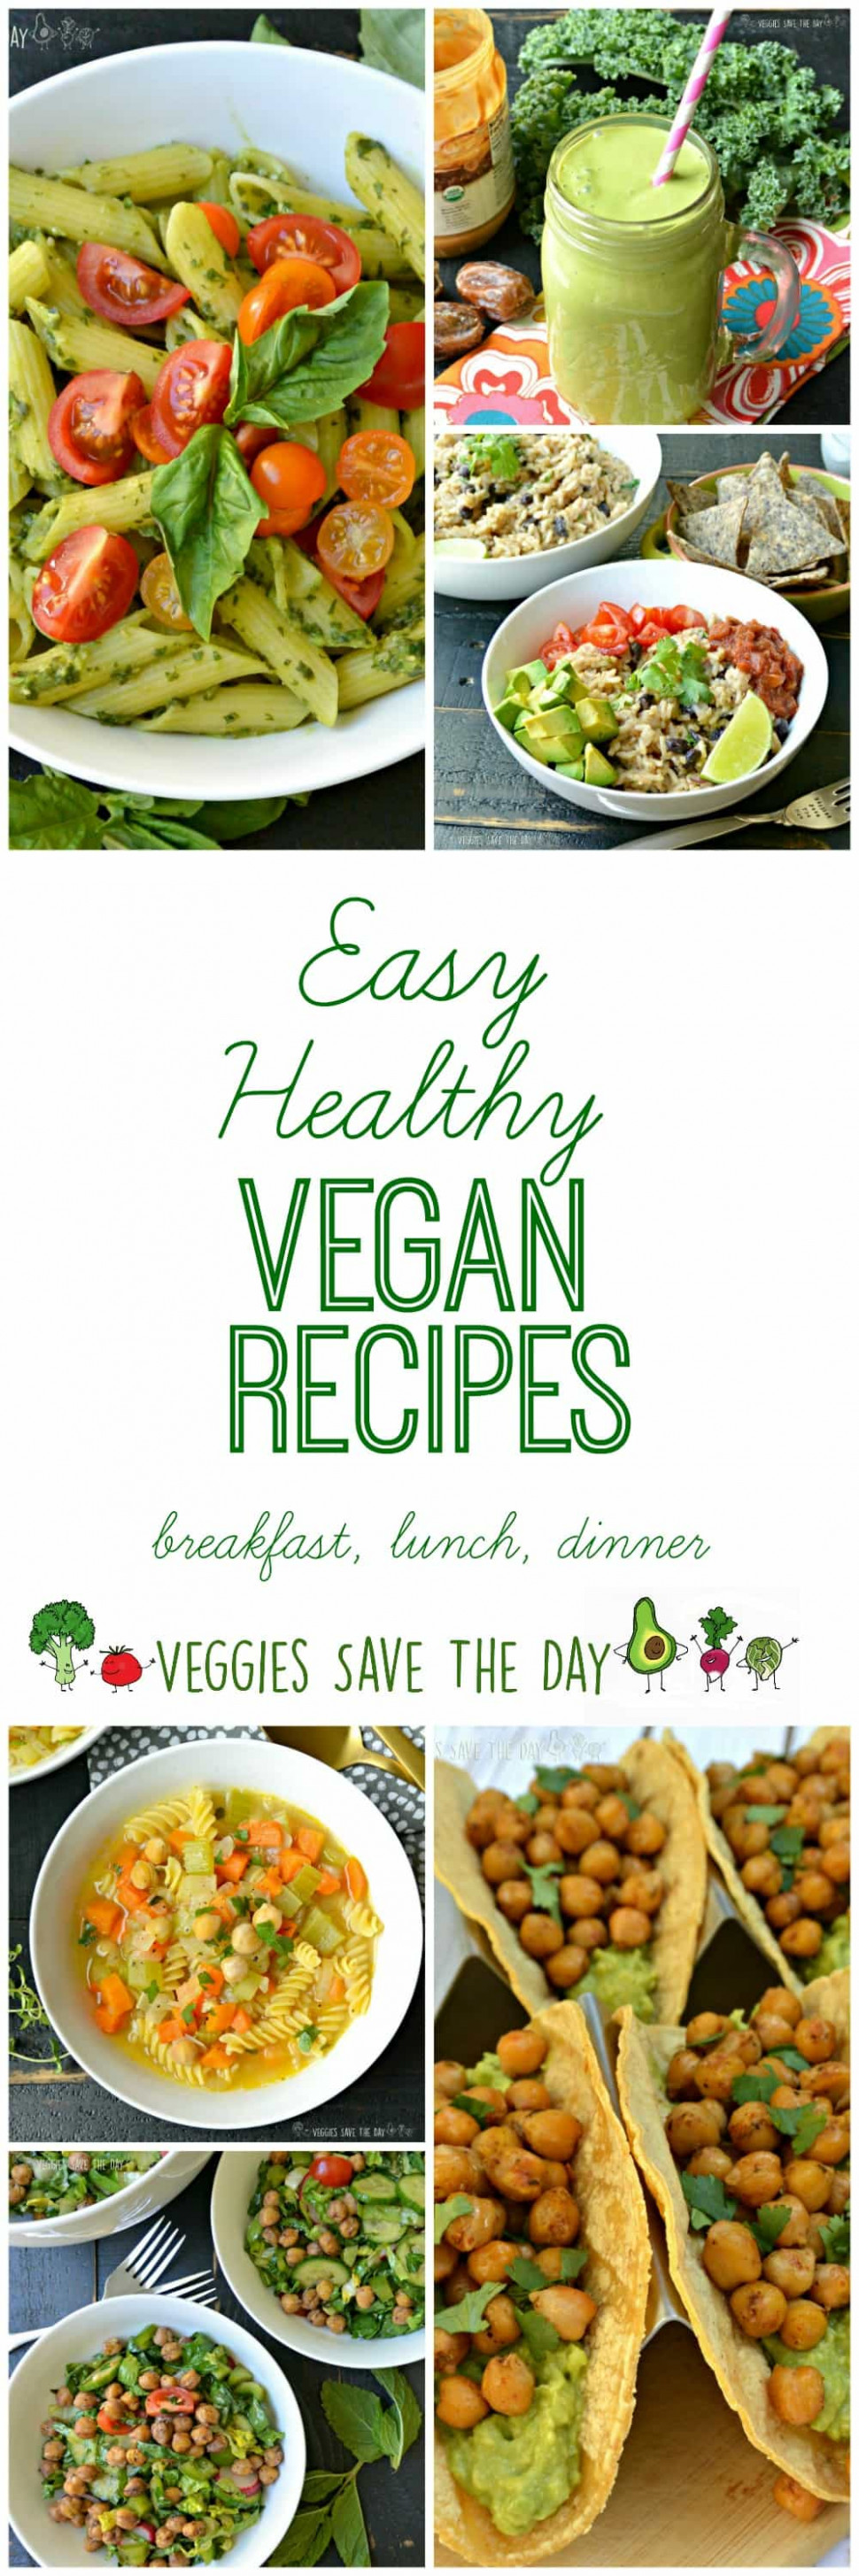 Easy Healthy Vegan Recipes - Veggies Save The Day